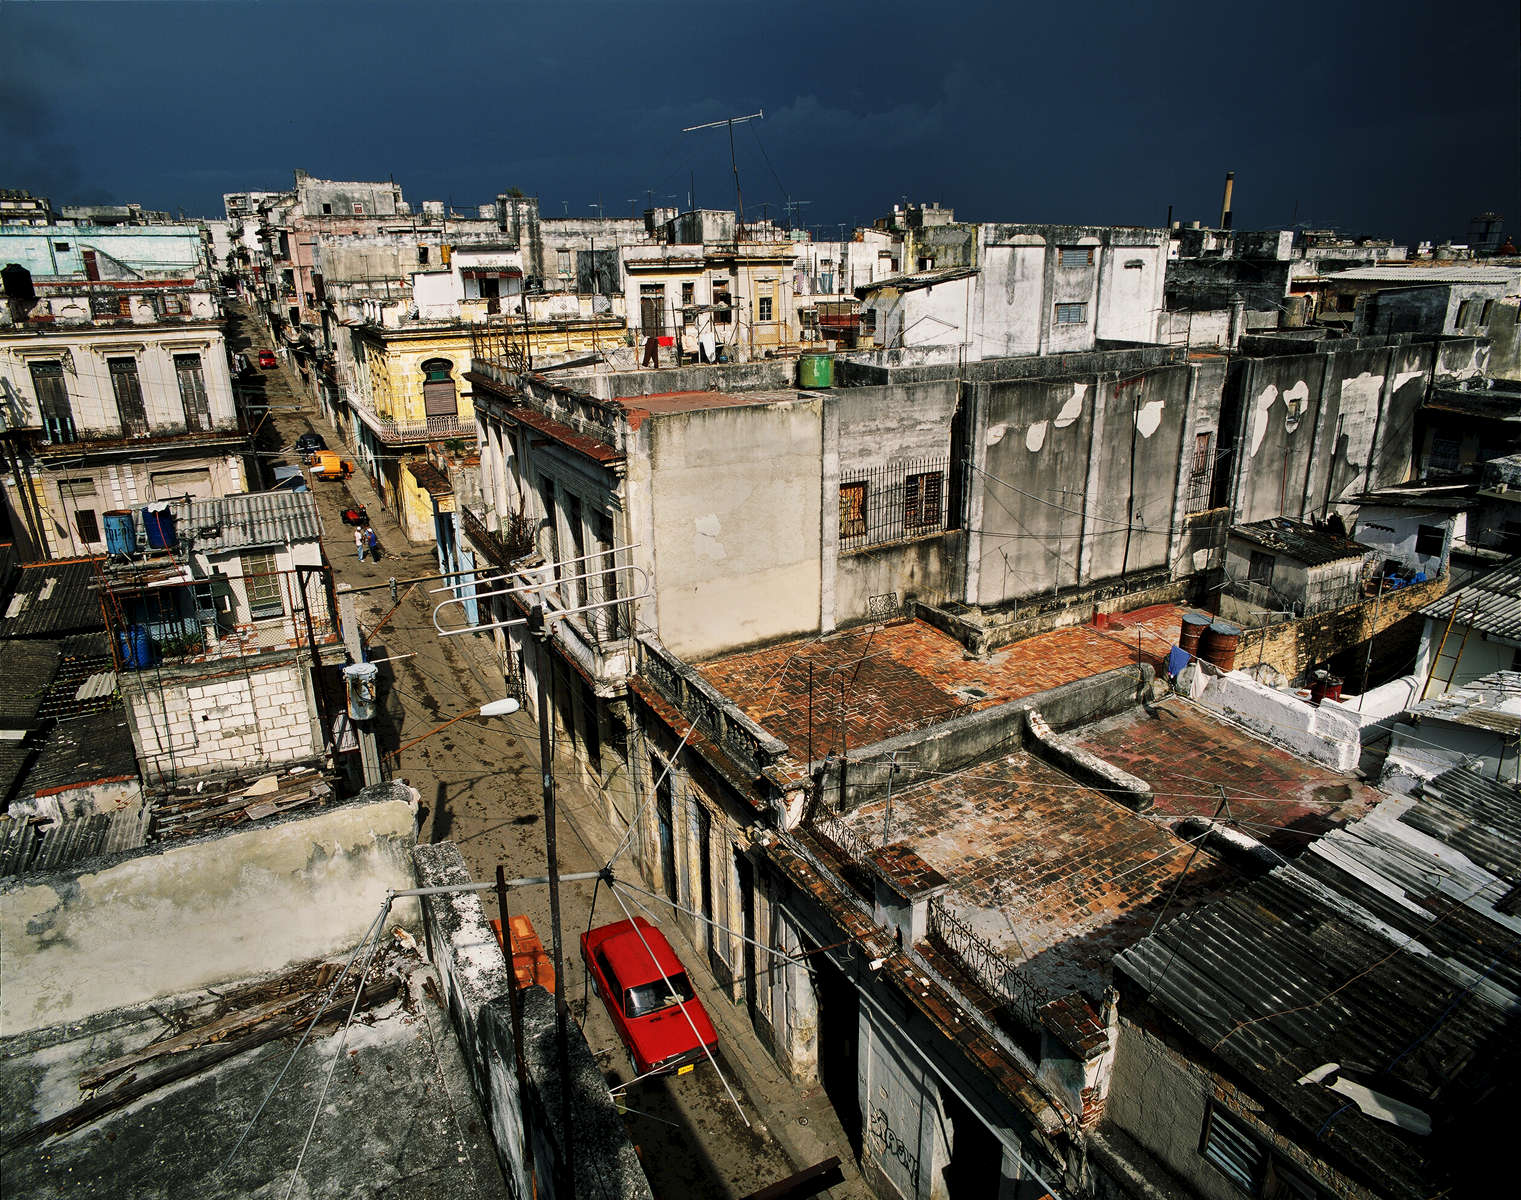 From Eduardo's roof, while enjoying the sunset, before the storm, over a bottle of rum, overlooking the mix of revelutionary and pre-revolutionary architecture.Havana, Cuba